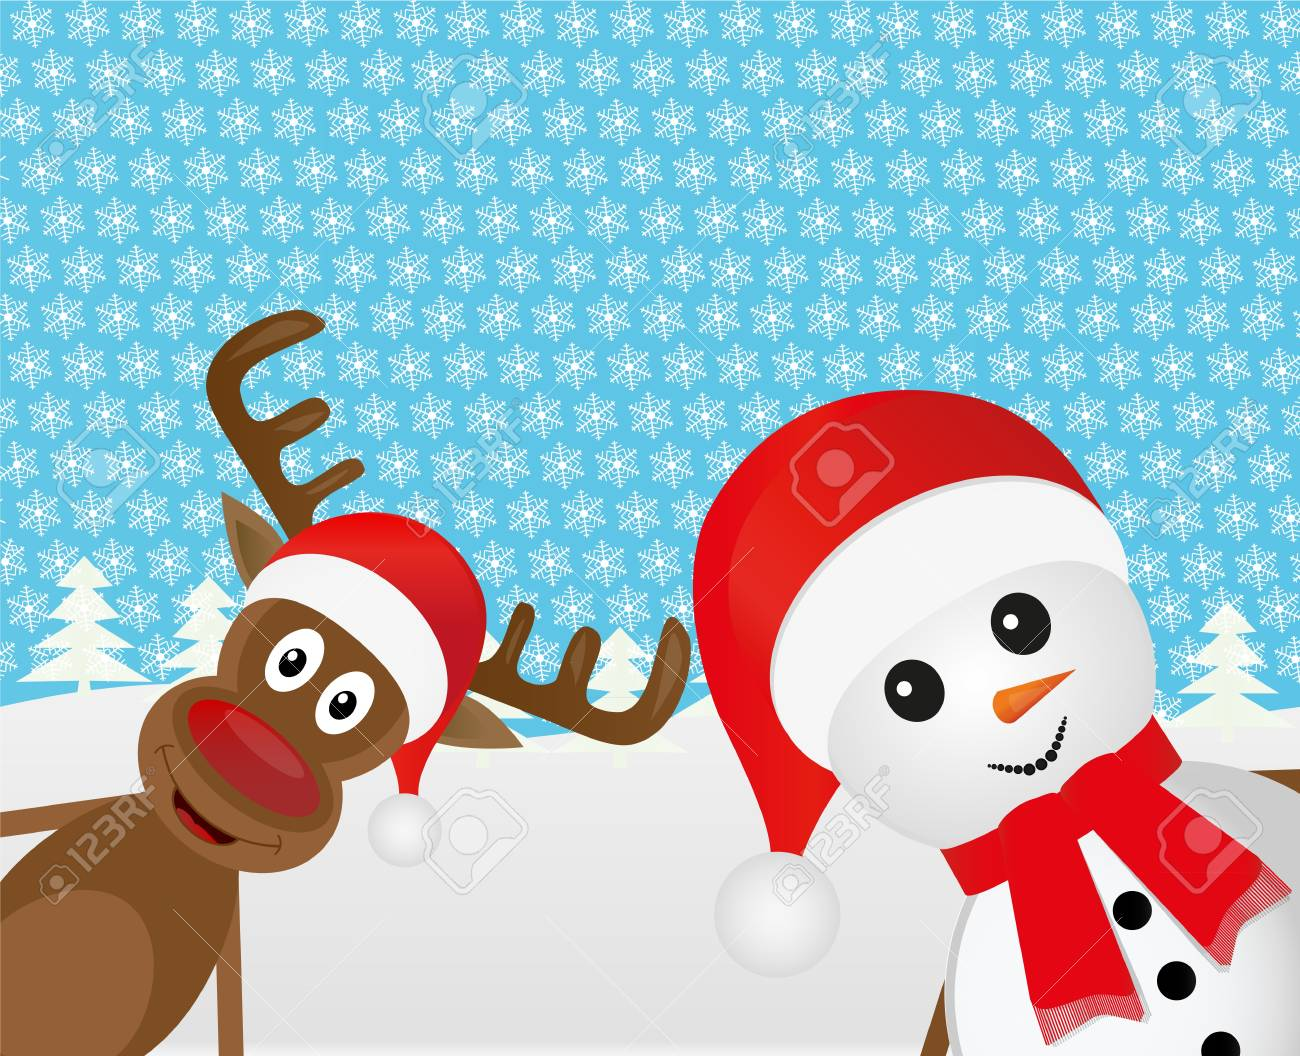 Snowman and Christmas reindeer peeking out of the woods Stock Vector - 16497388